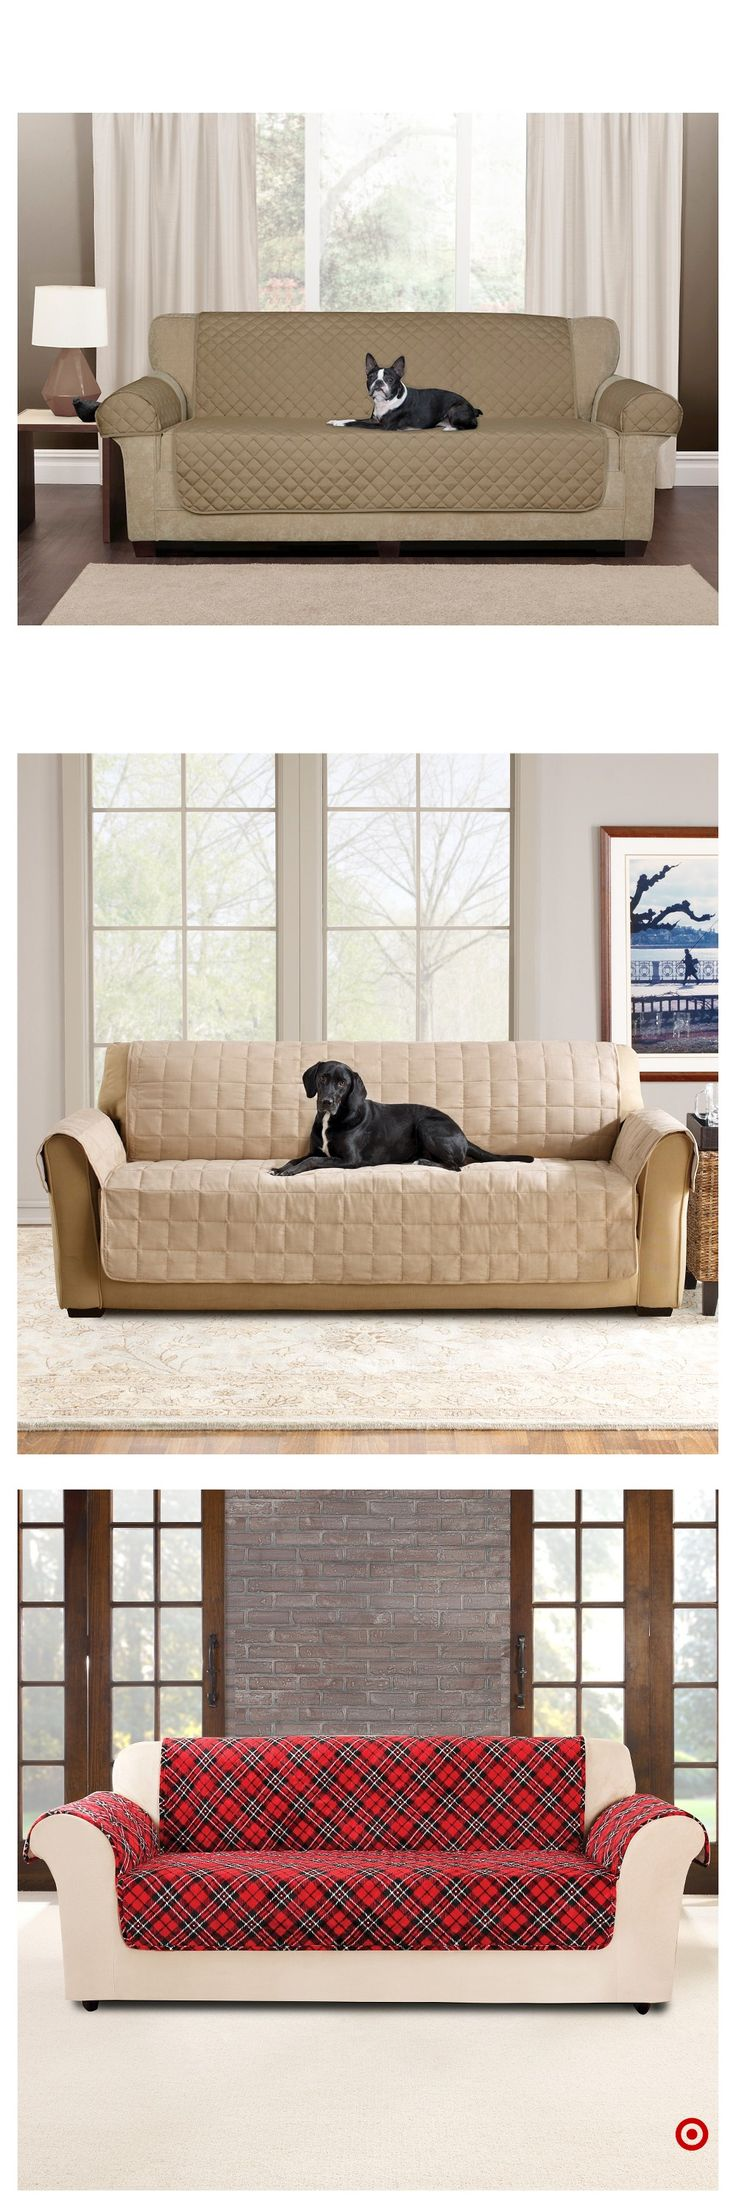 Shop Target For Sofa Pet Throw You Will Love At Great Low Prices. Free  Shipping